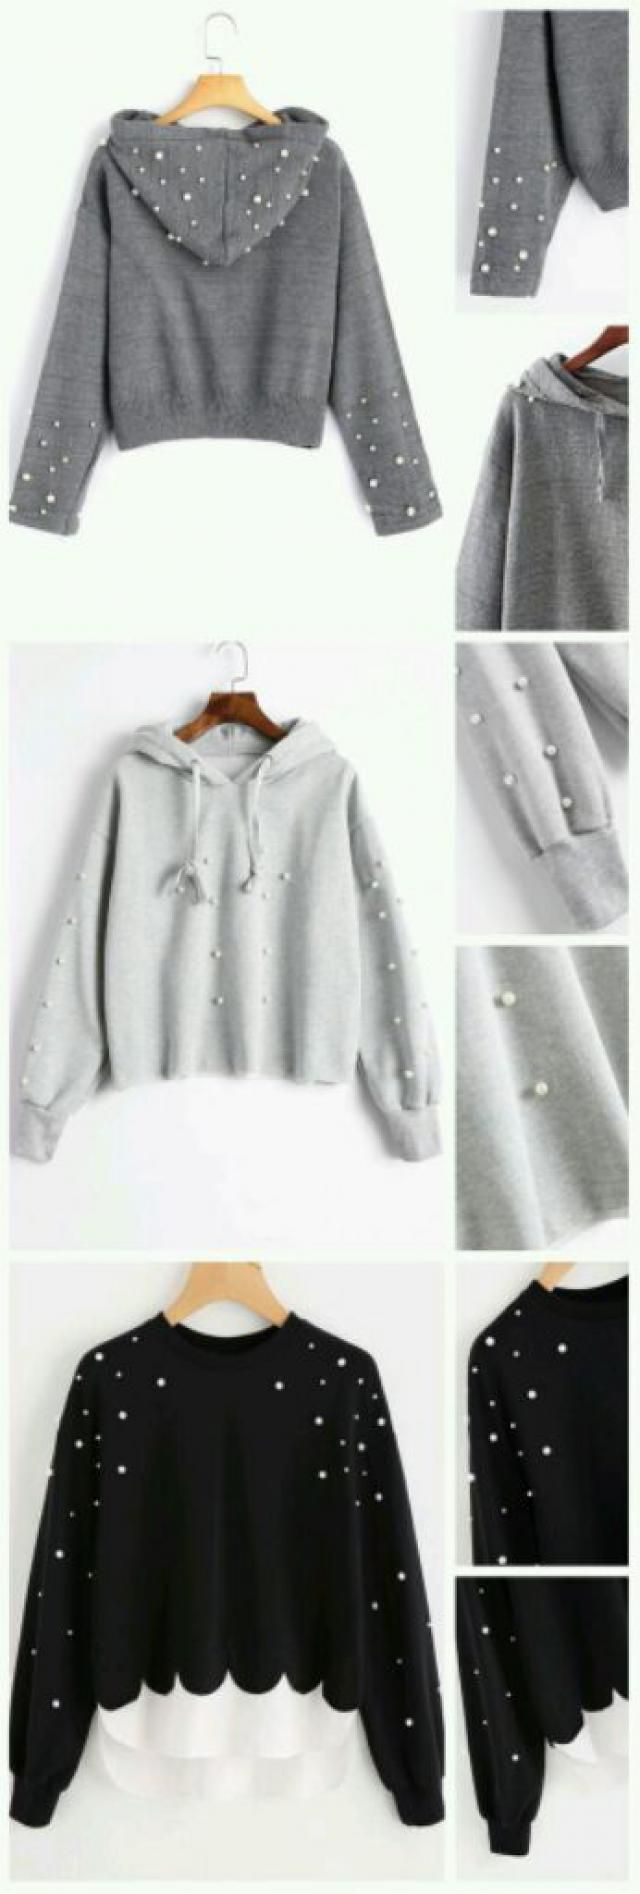 Sweater with pearls, so simple and so beautiful.